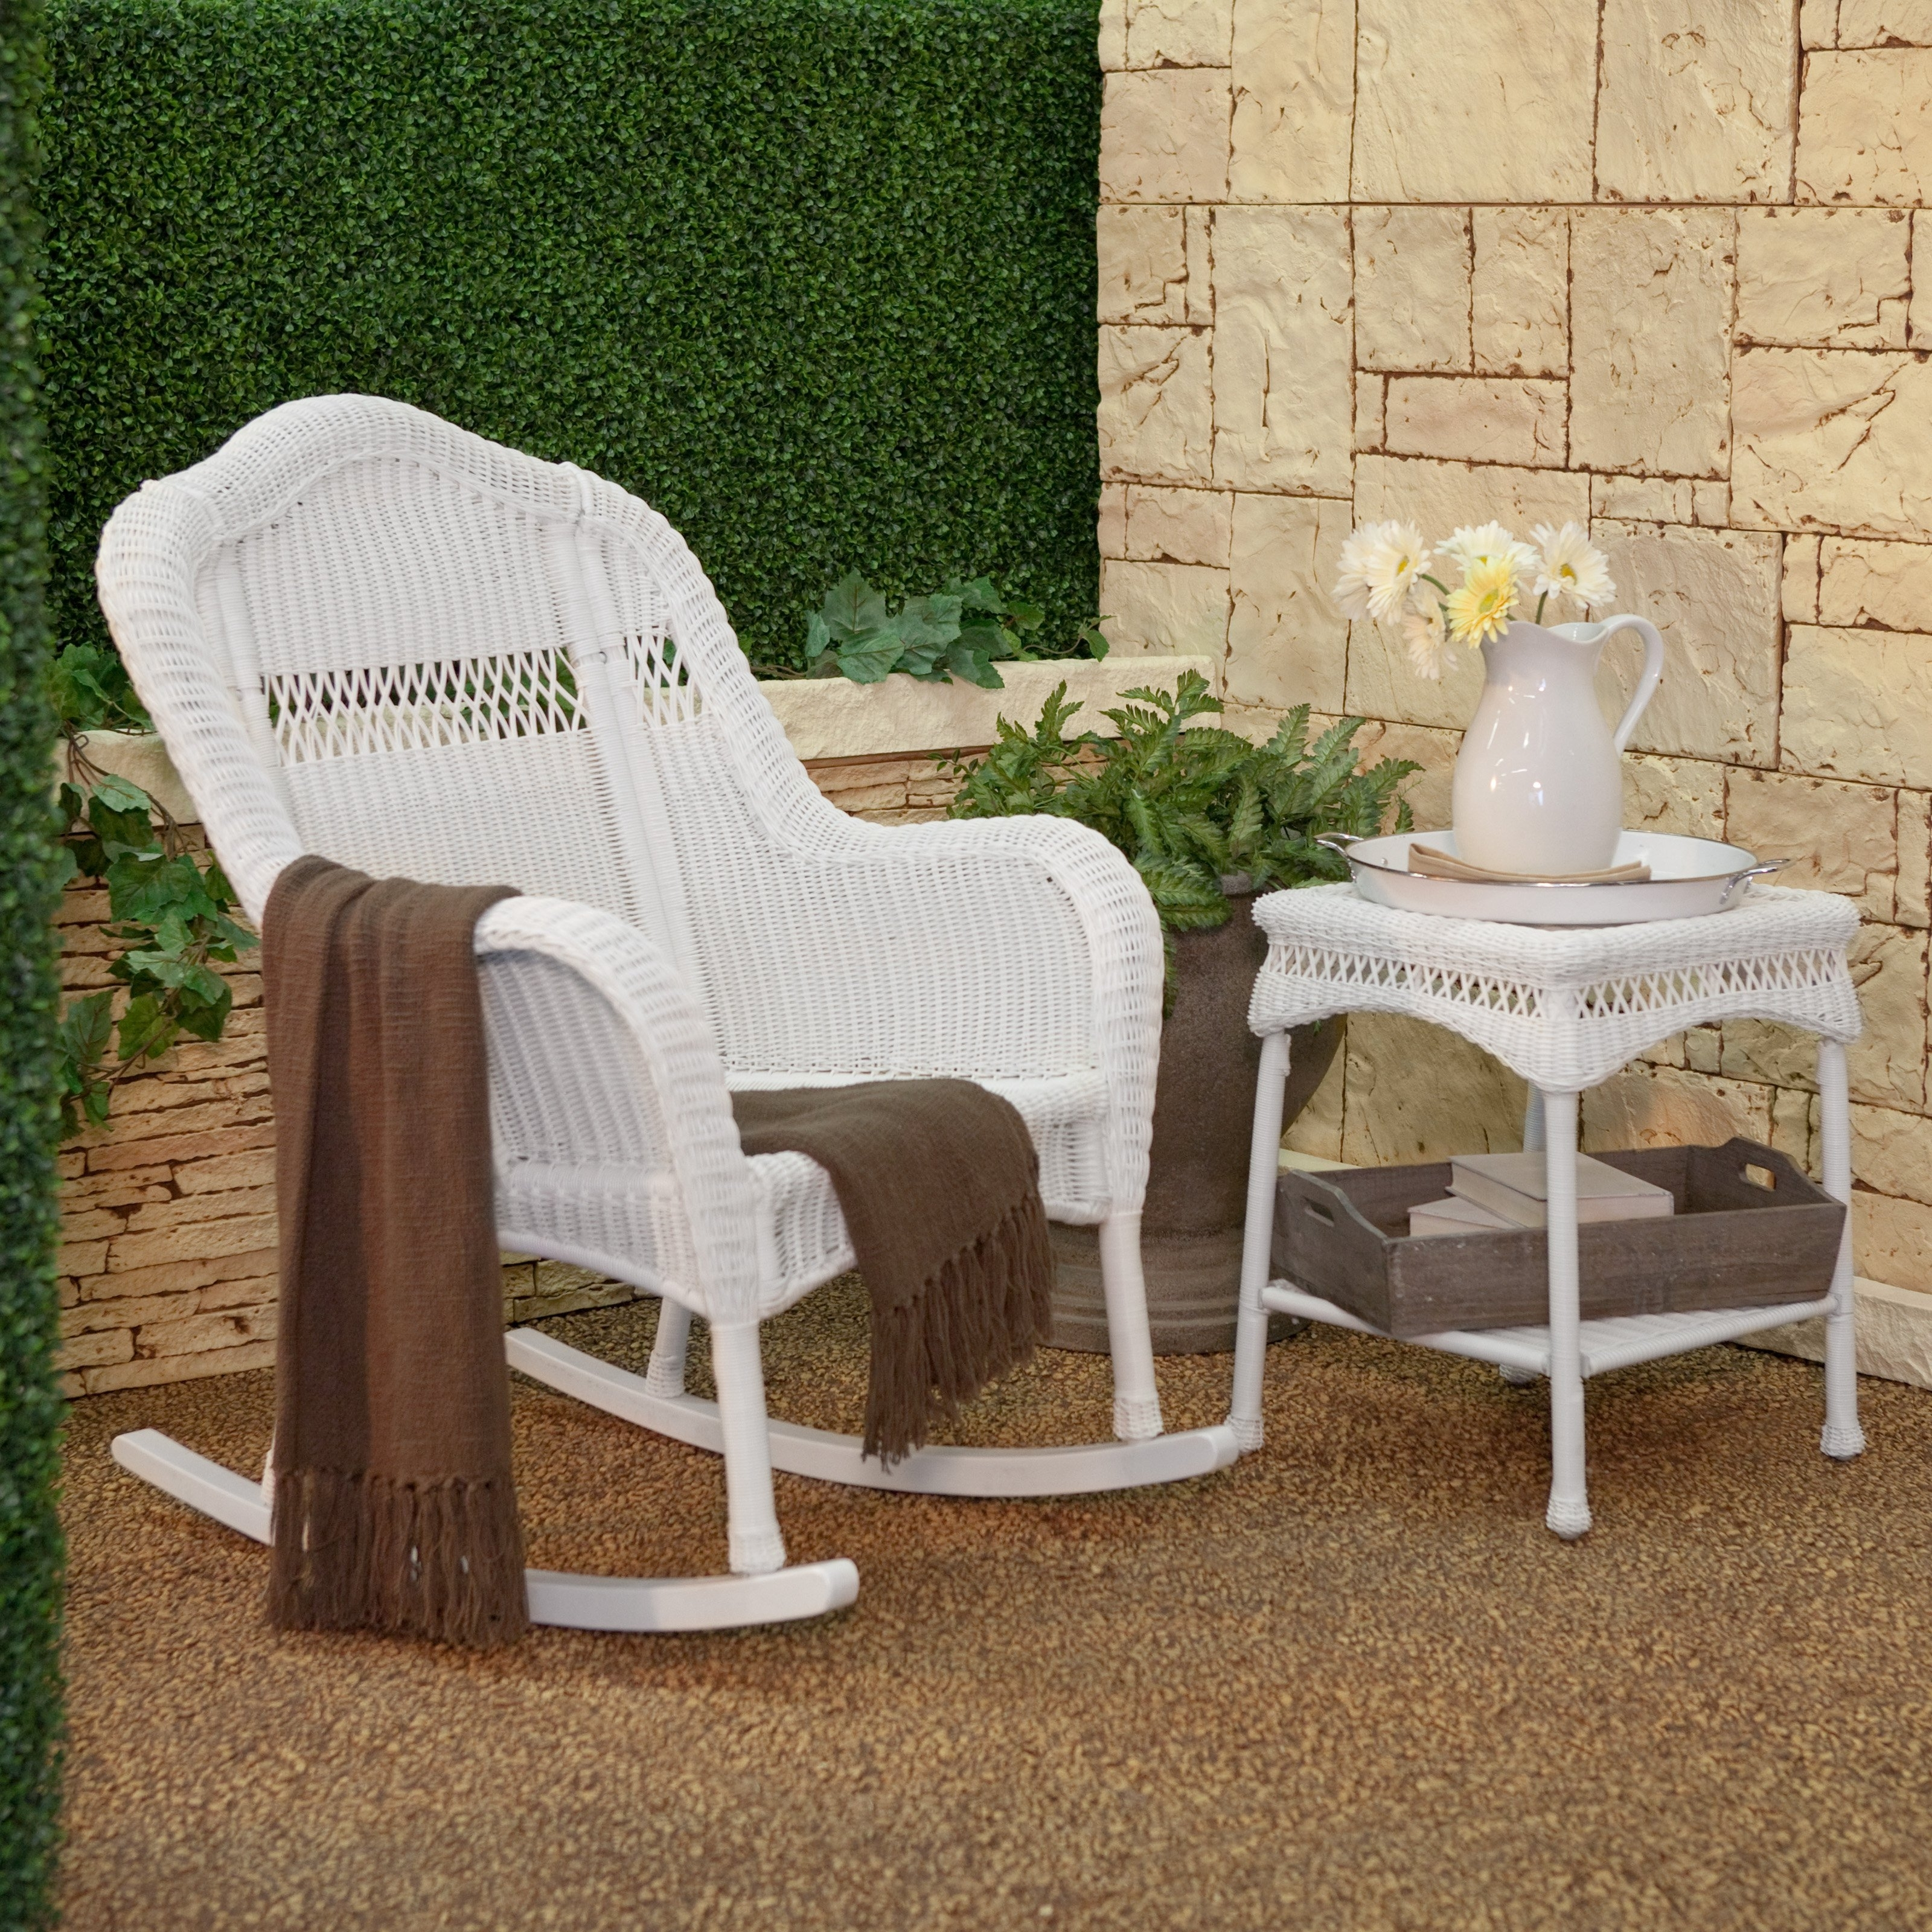 Patio Rocking Chairs With Cushions In Latest Coral Coast Casco Bay Resin Wicker Rocking Chair With Cushion Option (View 11 of 20)